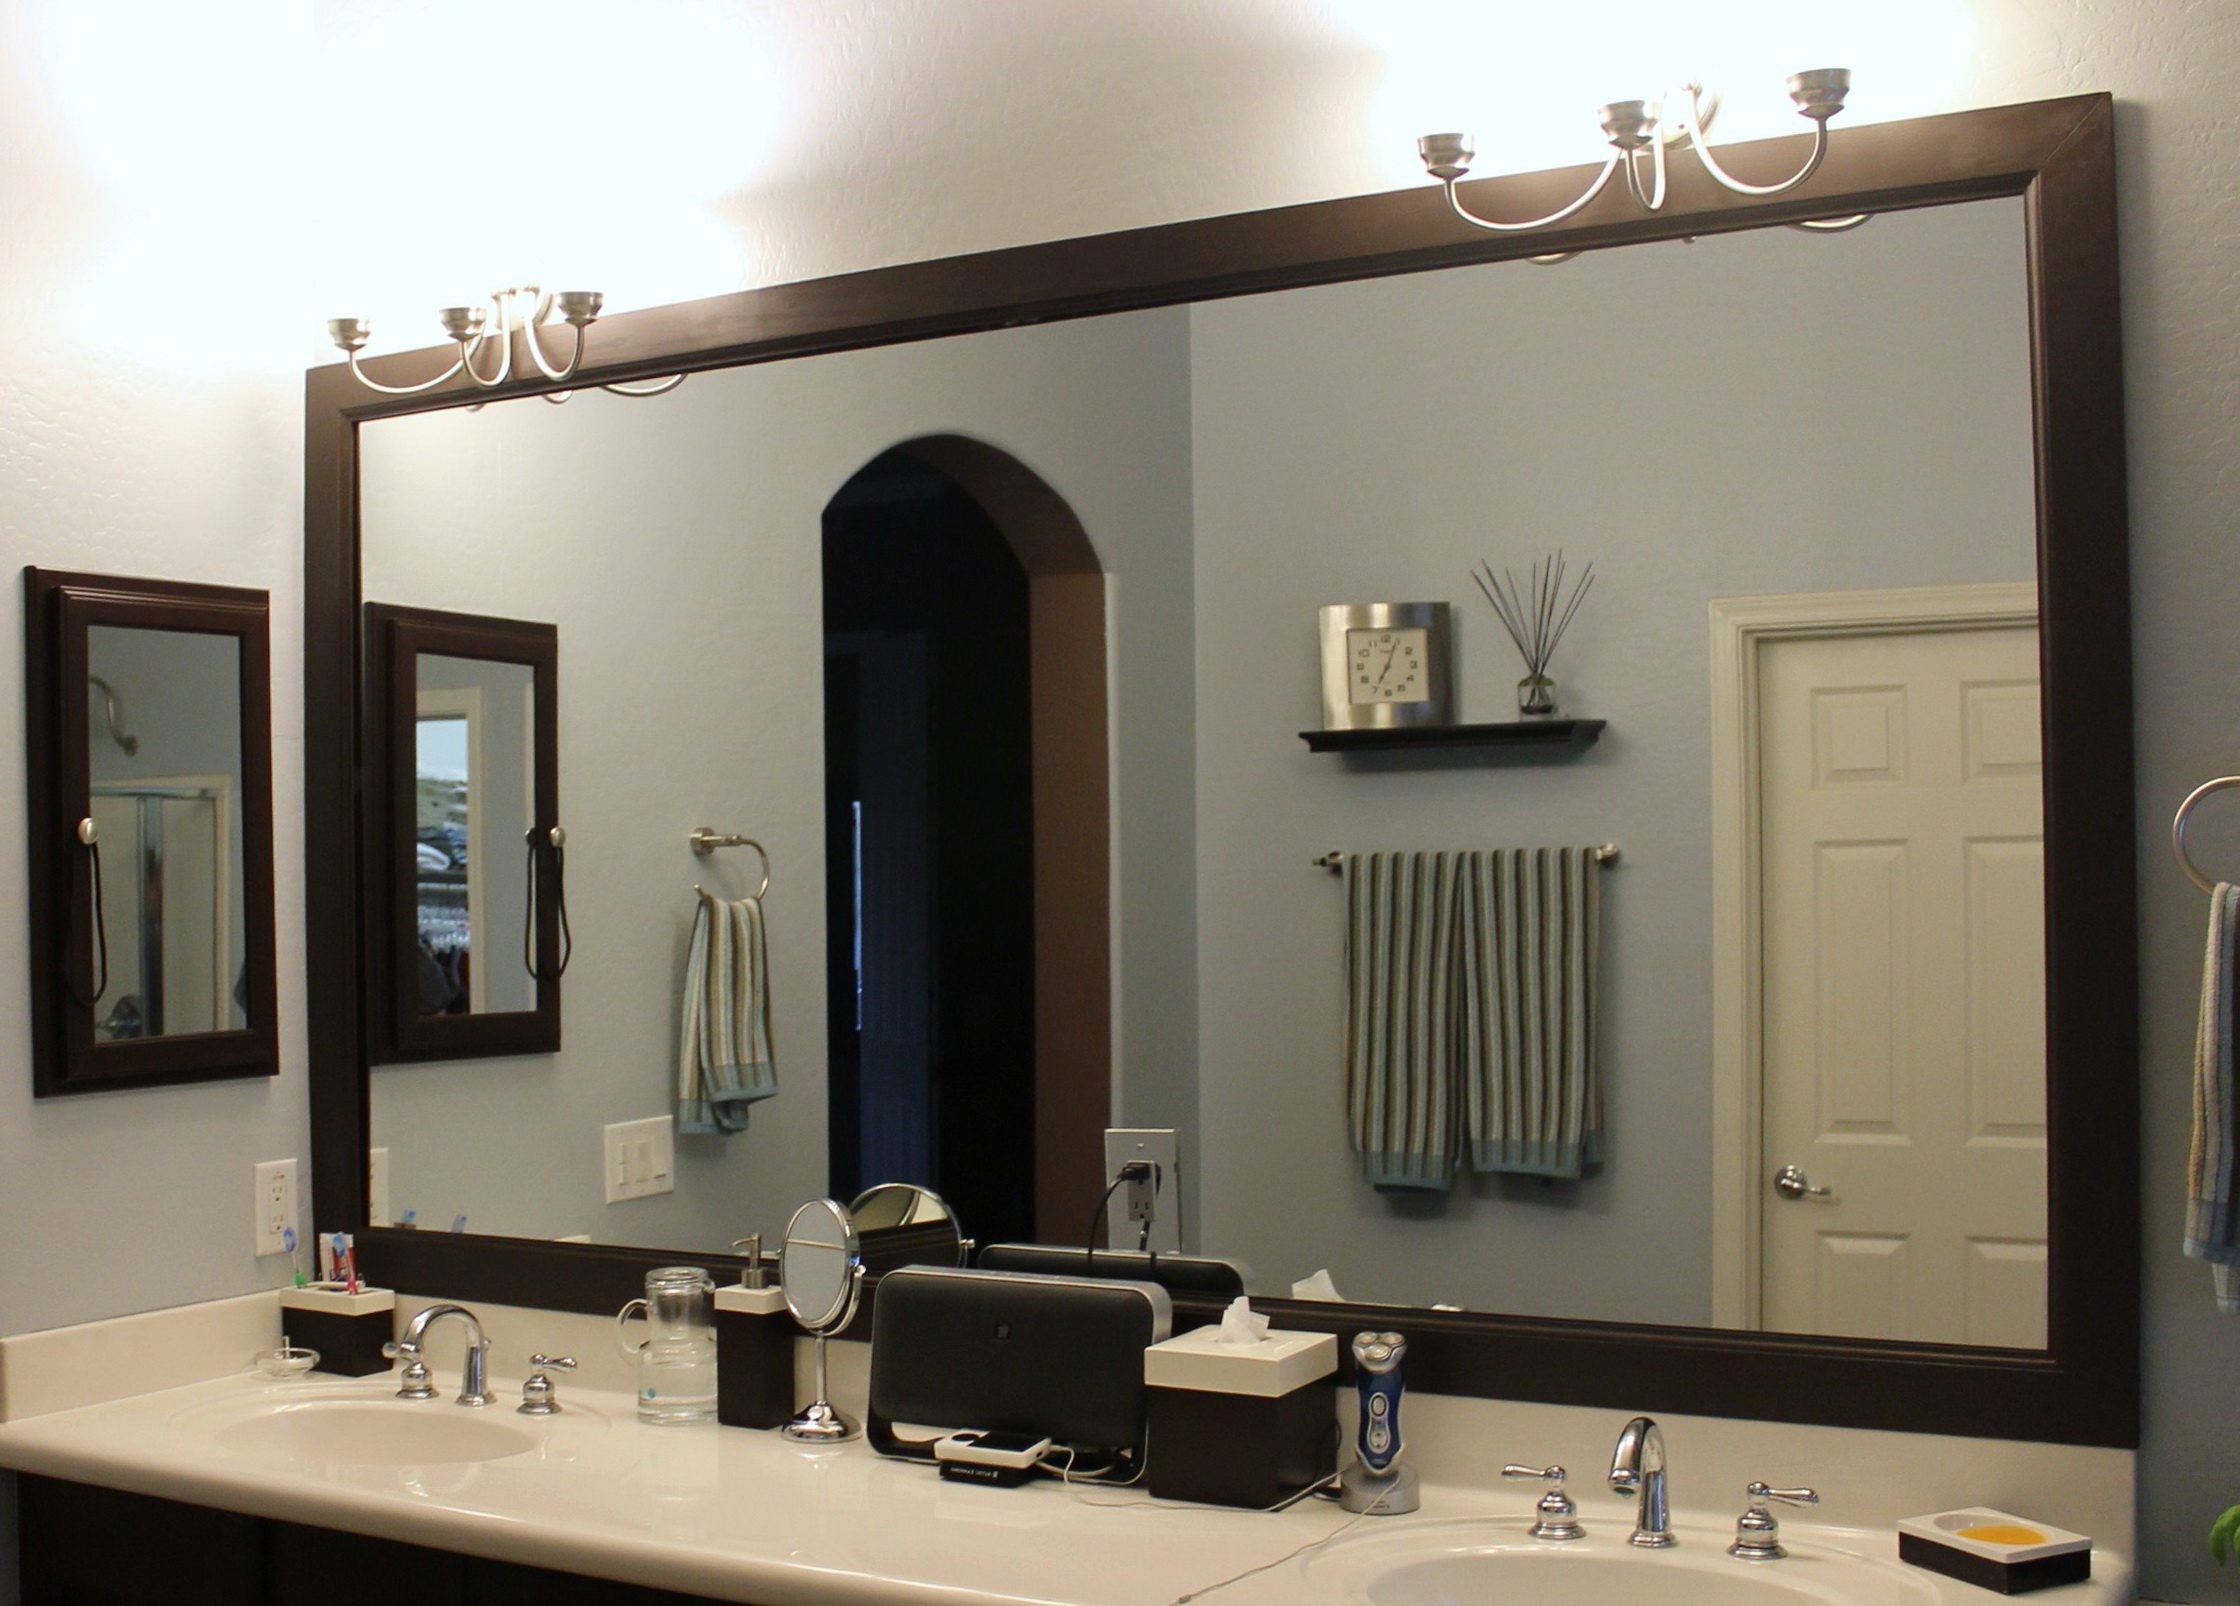 bathroom custom silver framed mirrors design inspiration mirror  surround surrounds elegant decor with large shocking rectangular